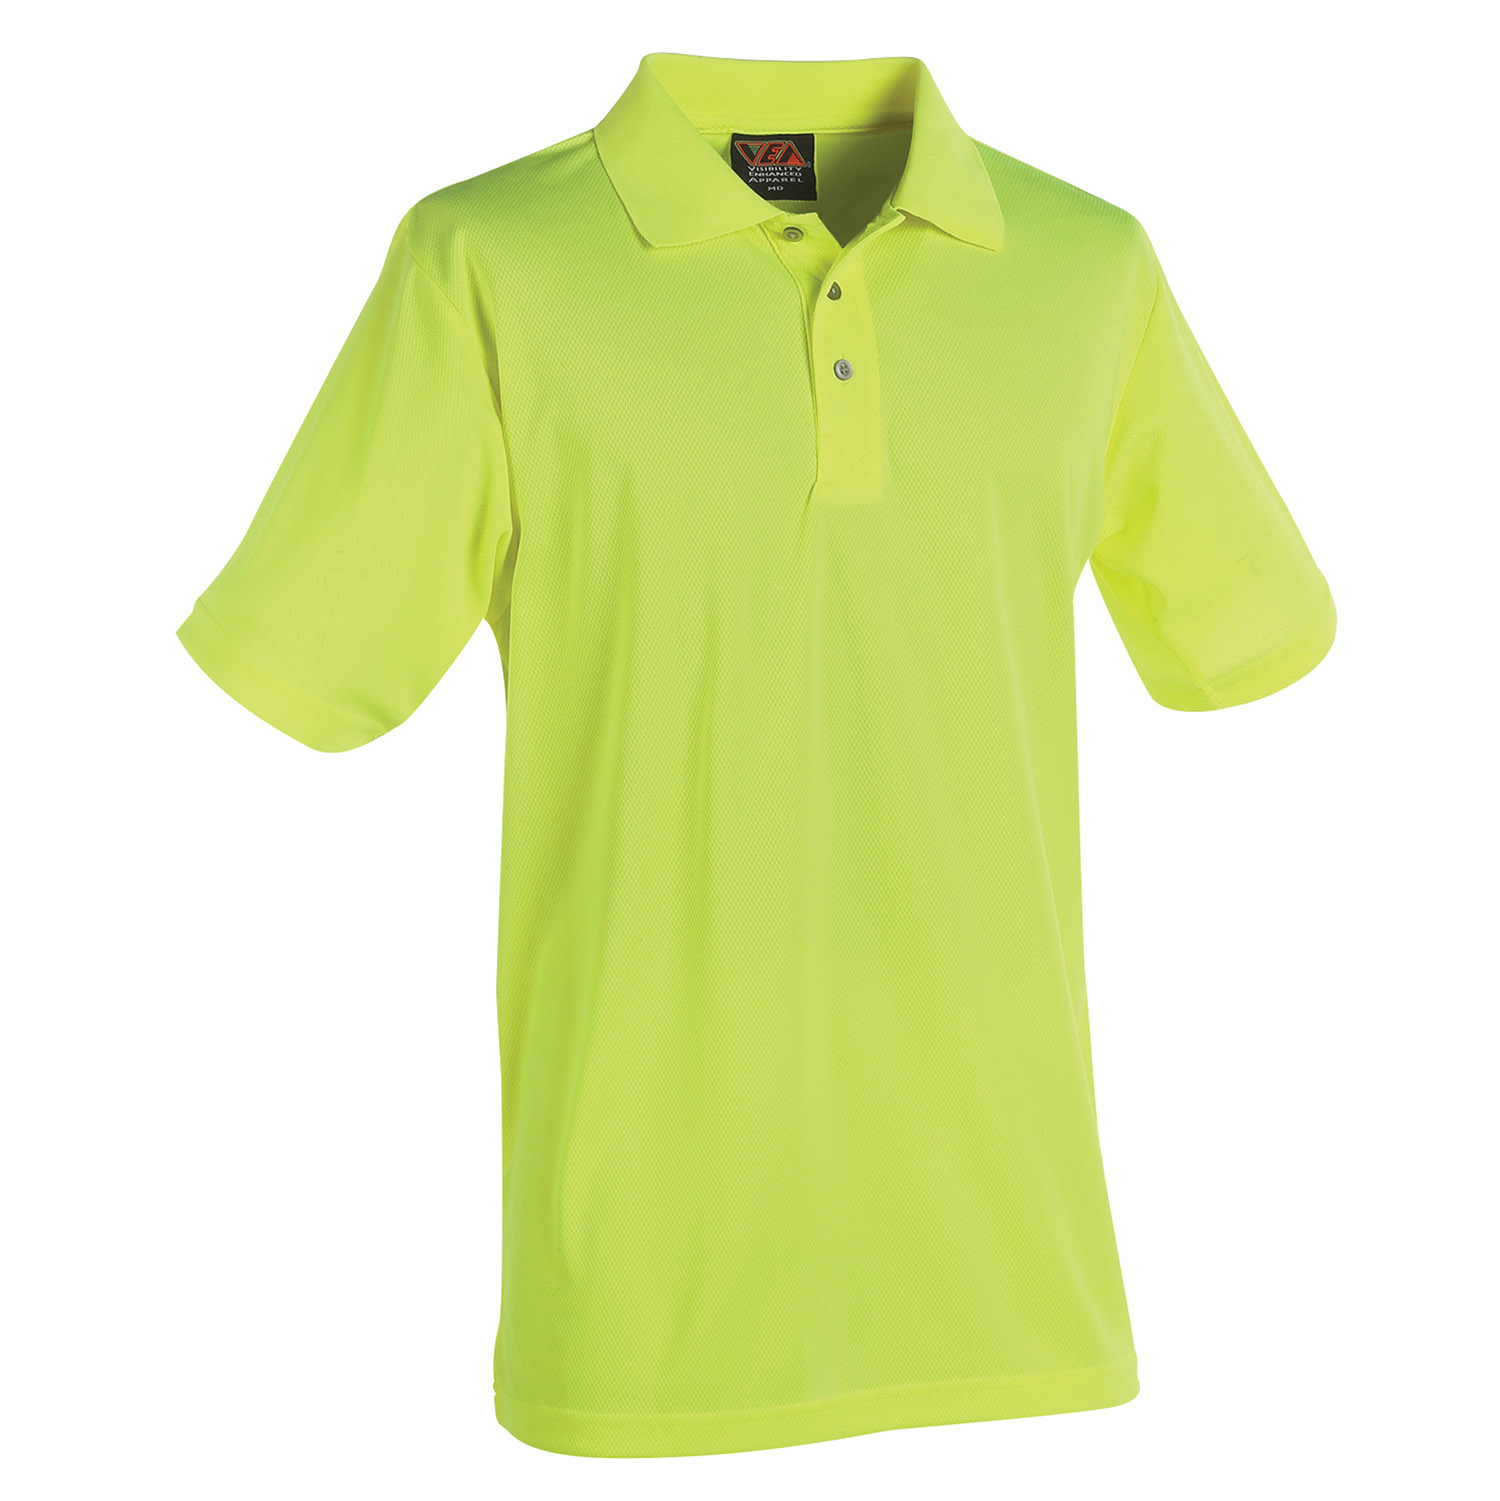 VEA Visibility Knit Performance Polo